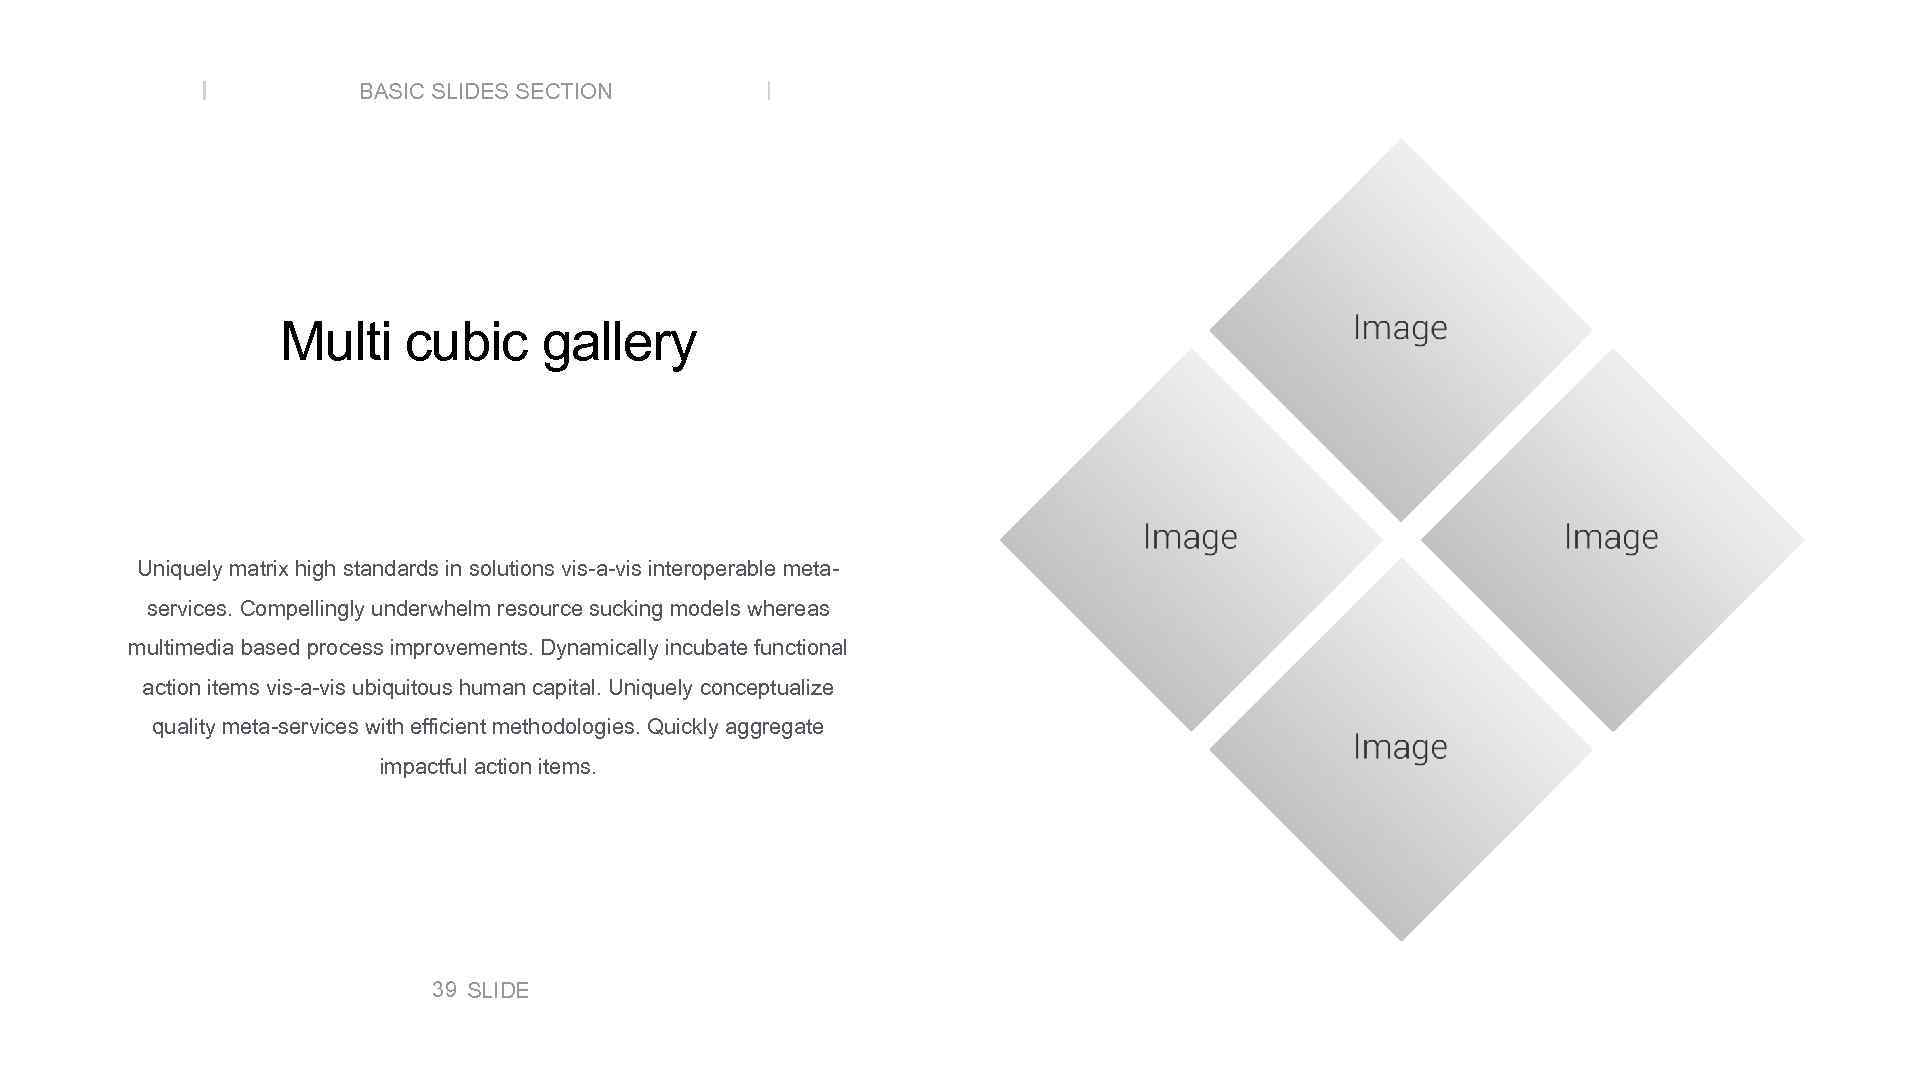 BASIC SLIDES SECTION Multi cubic gallery Uniquely matrix high standards in solutions vis-a-vis interoperable